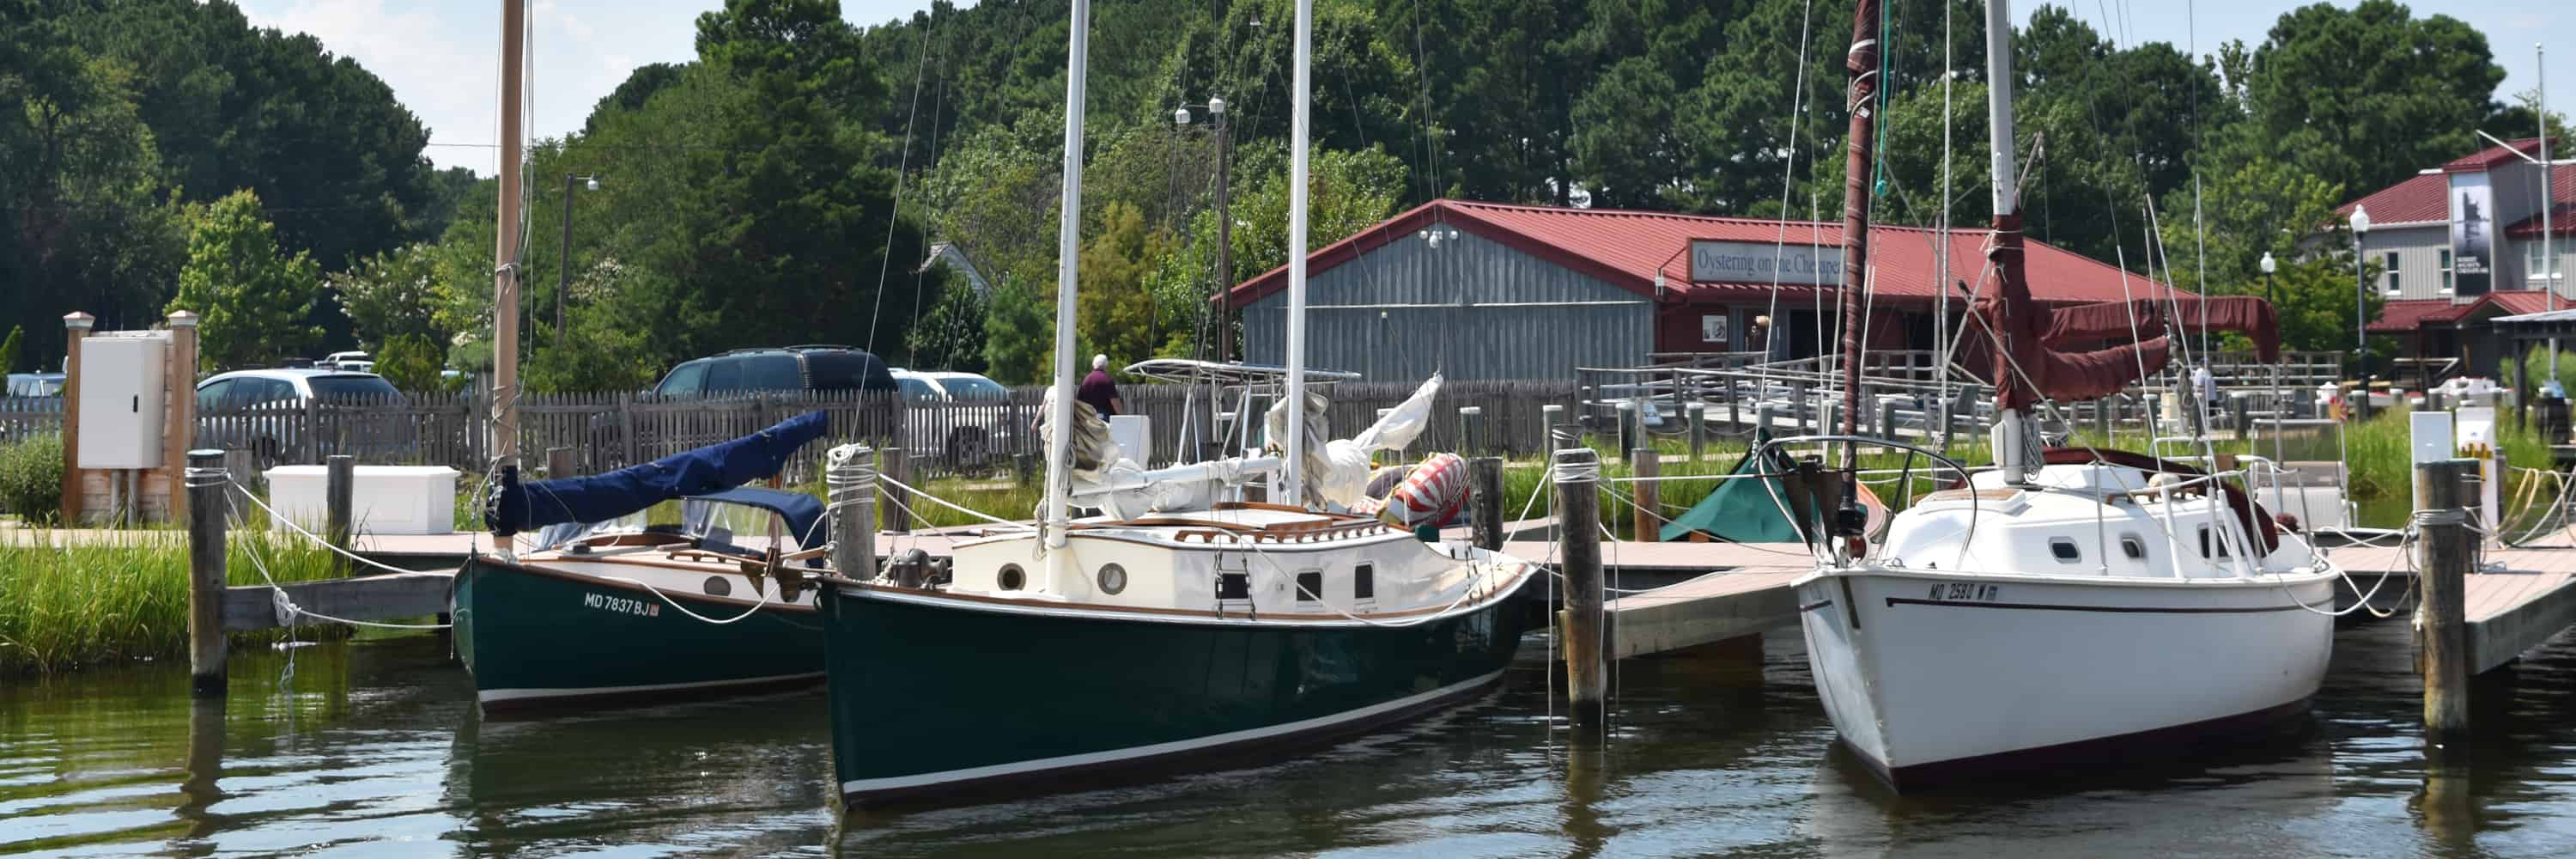 CBMM's Charity Boat Donation Program. We accept and sell donated boats all year long!